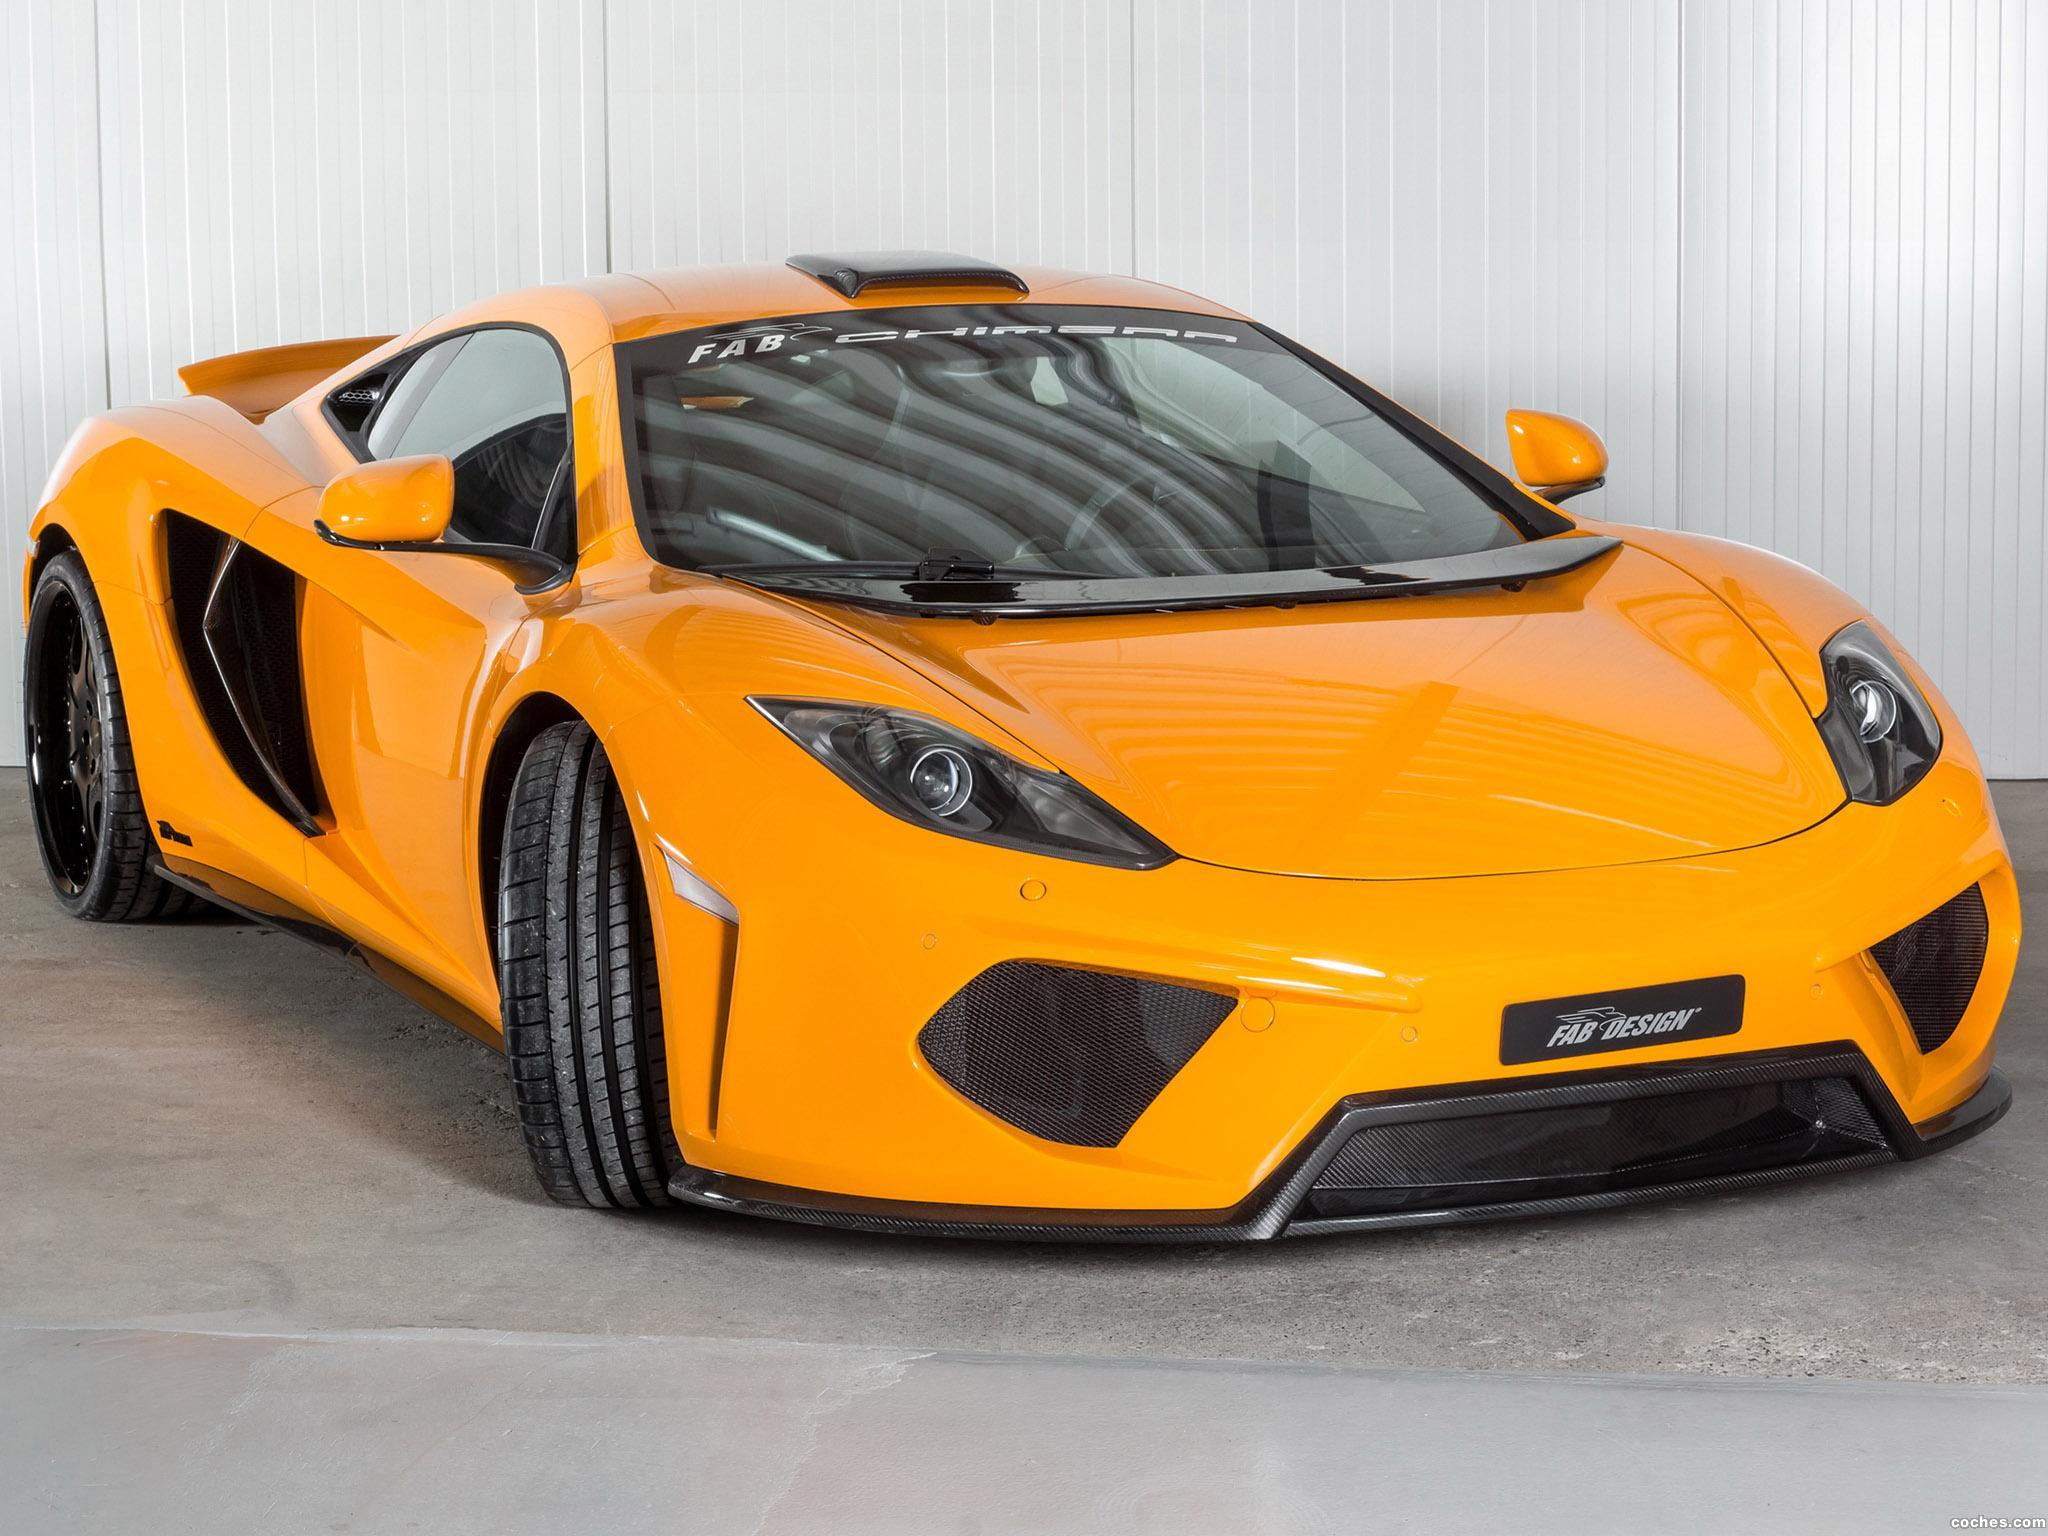 fab-design_mclaren-mp4-12c-chimera-2013_r6